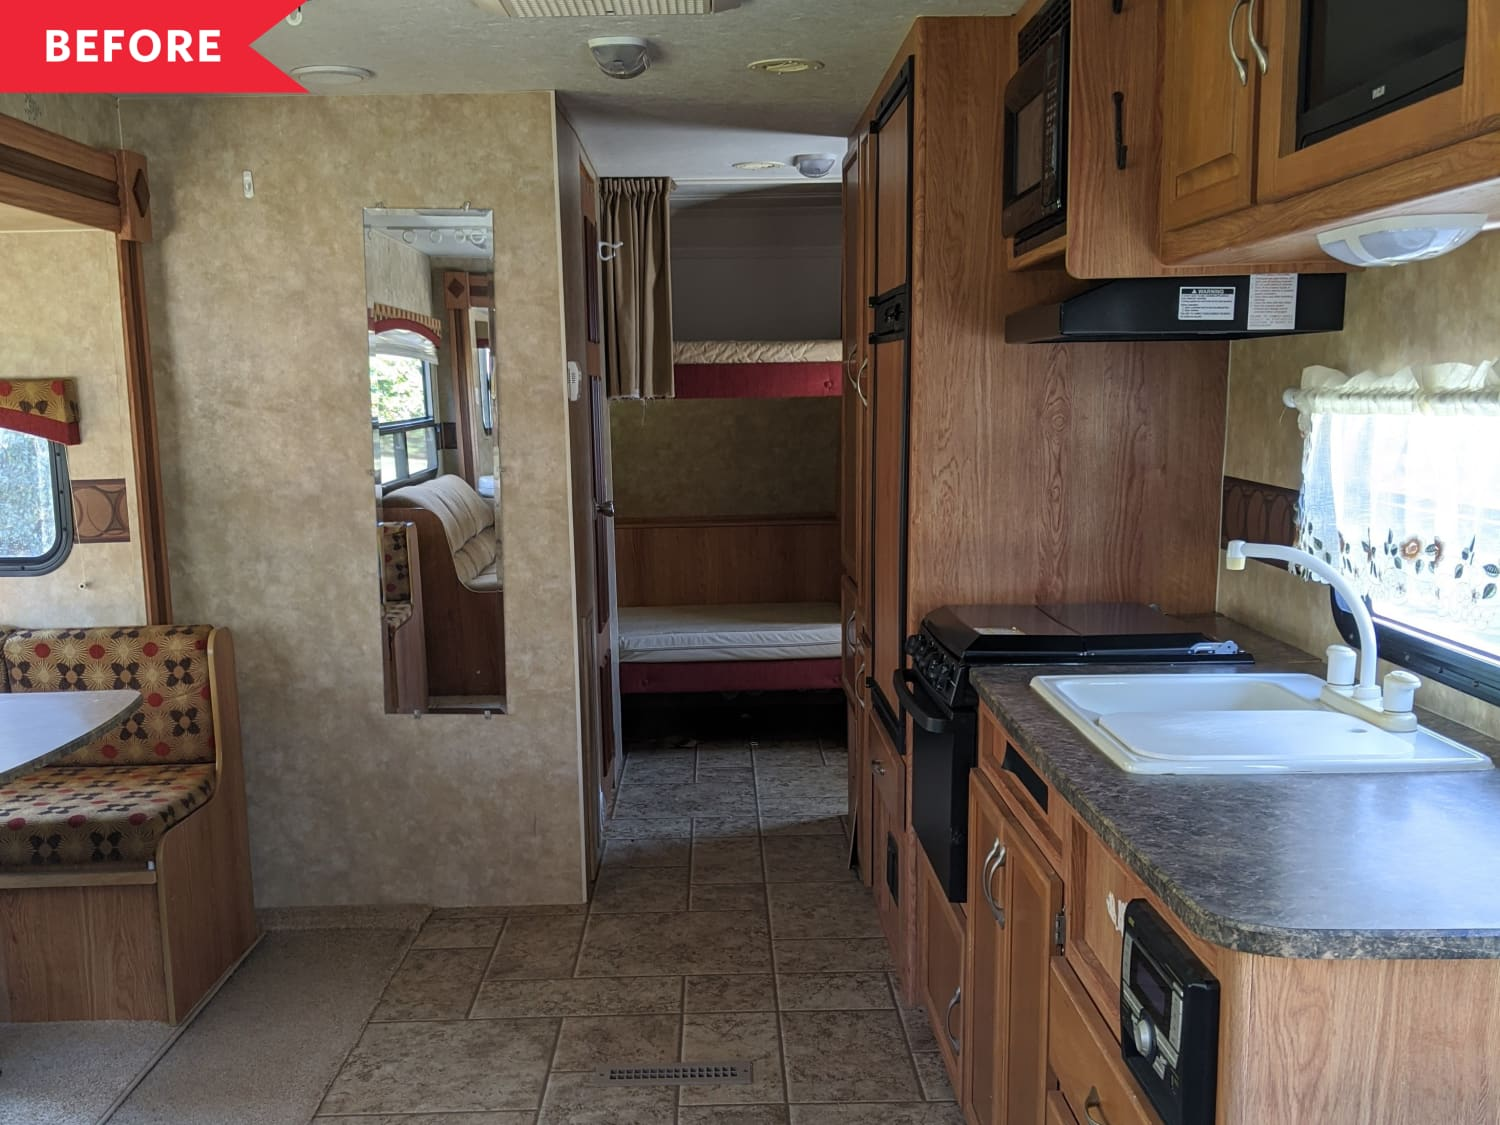 Before & After: A Dark, Outdated RV Becomes a Boho-Modern Haven